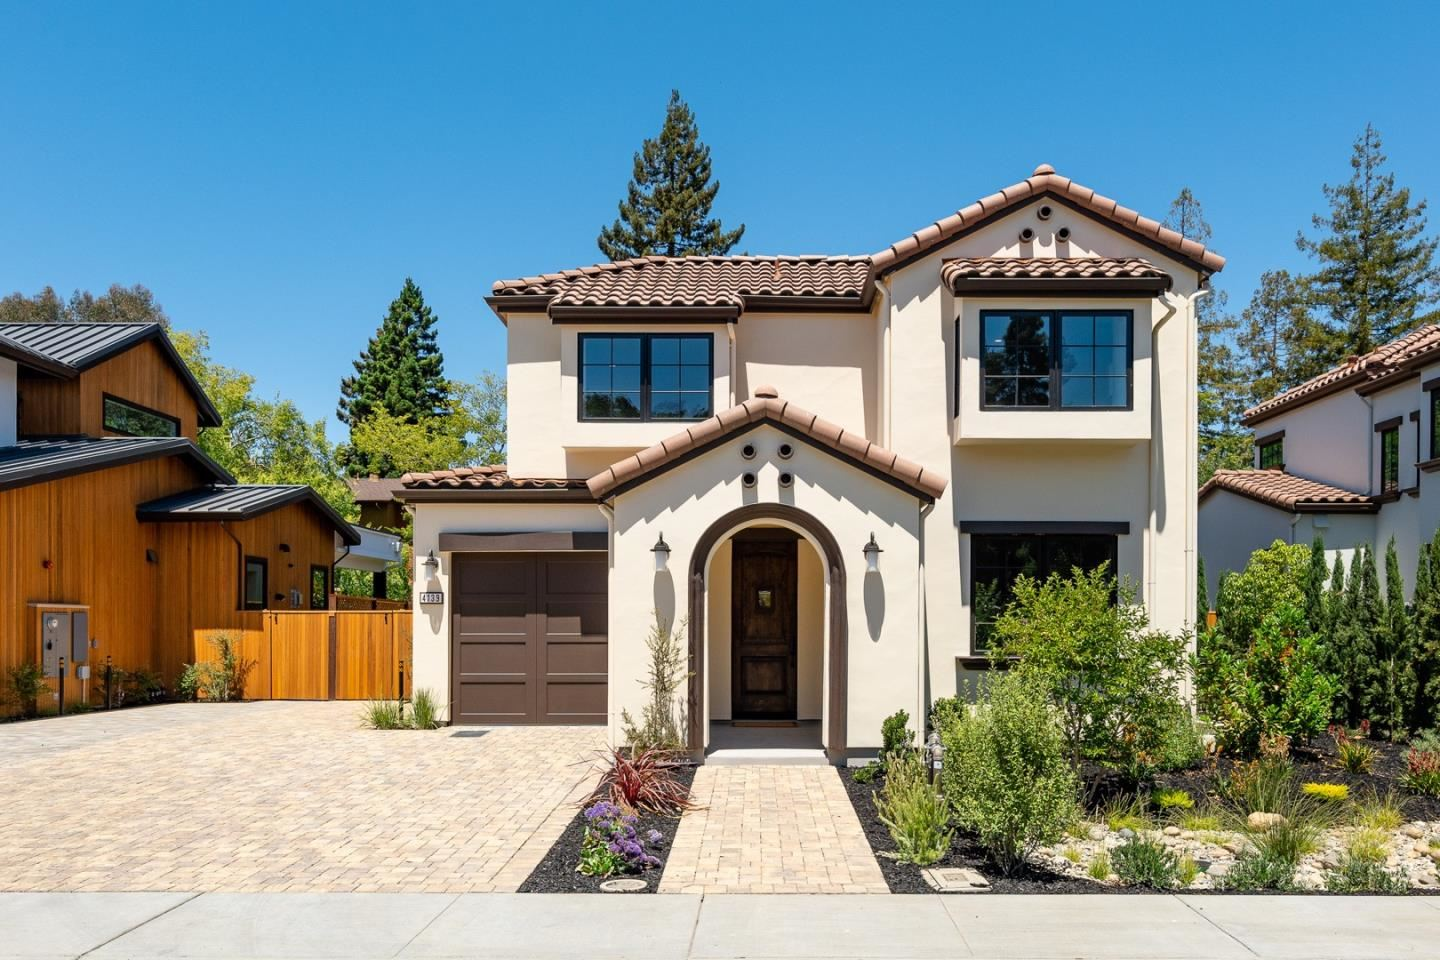 Photo for 4139 Orchard Court, PALO ALTO, CA 94306 (MLS # ML81853359)